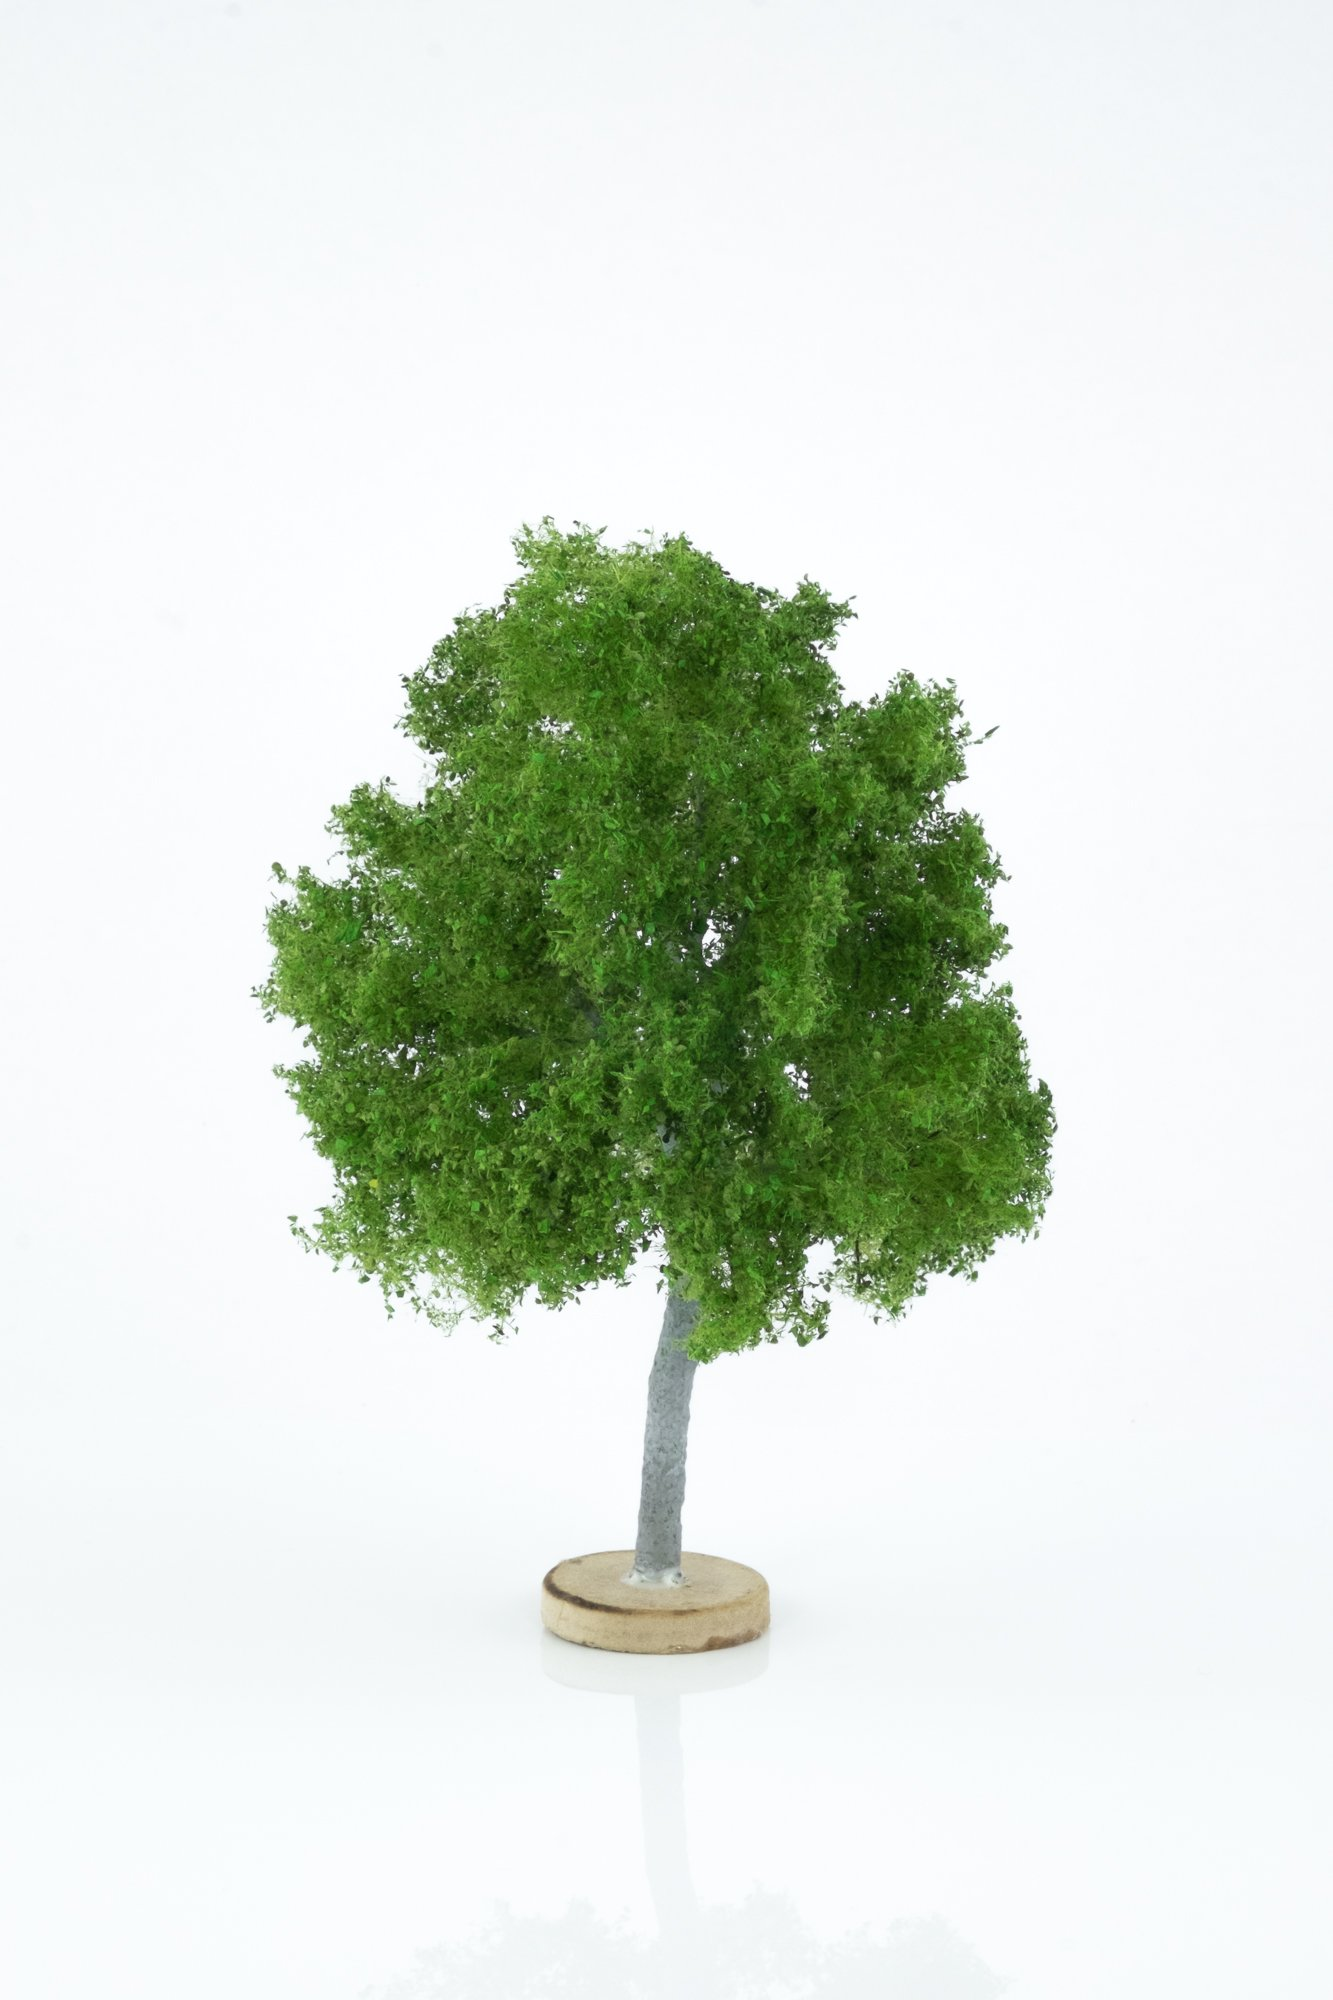 Hand-made, green, maple tree model. Size between 14 and 16 cm. Made from high quality model supplies by Primo Models.